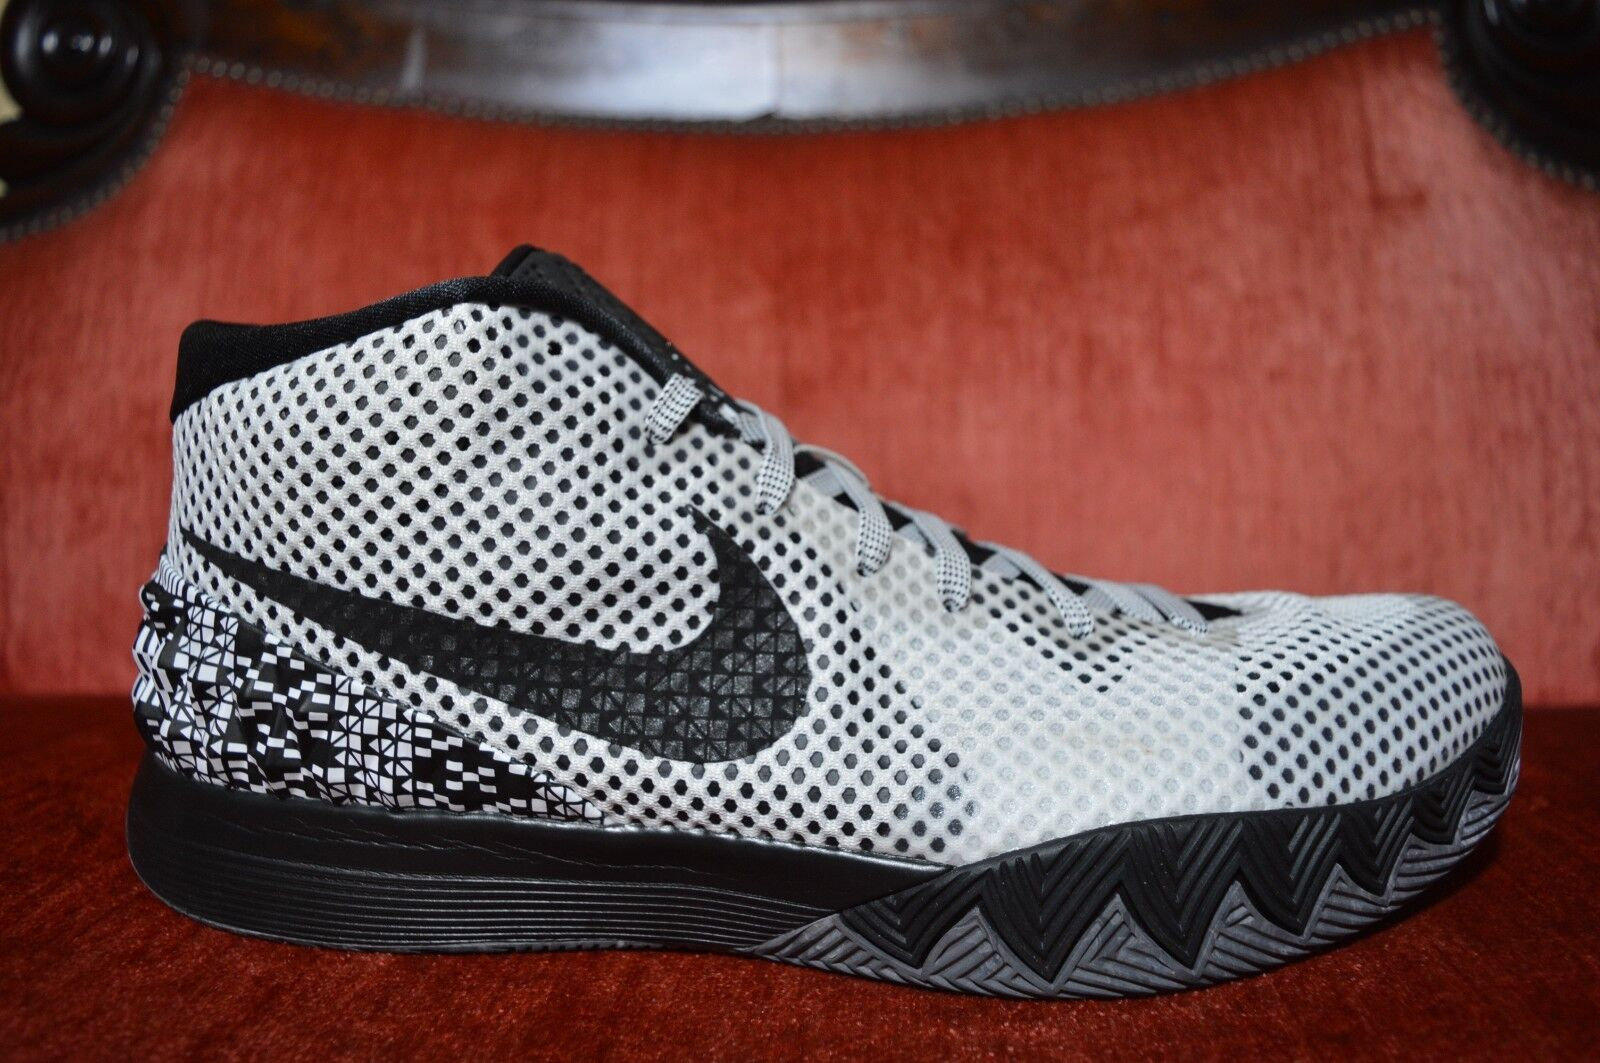 WORN 1X Nike Kyrie 1 BHM Size 13 718820-100. Black History Month dream all star